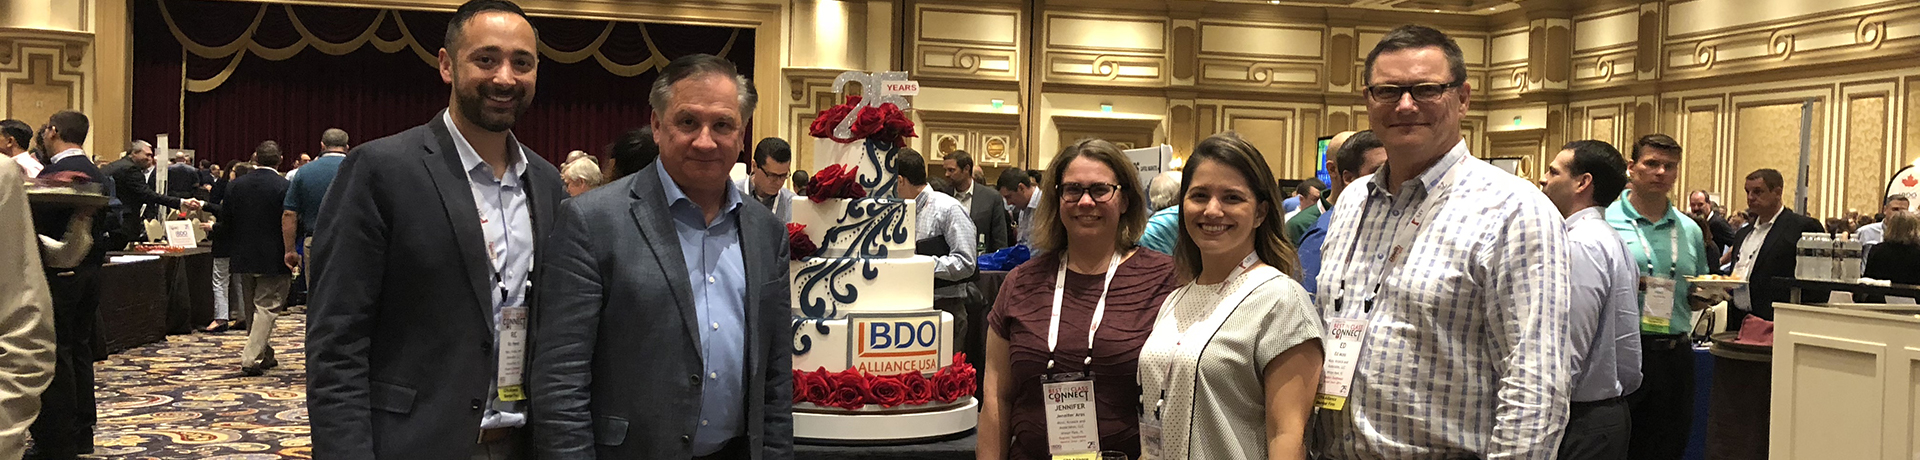 group of staff standing with 'bdo' bags in conference hall